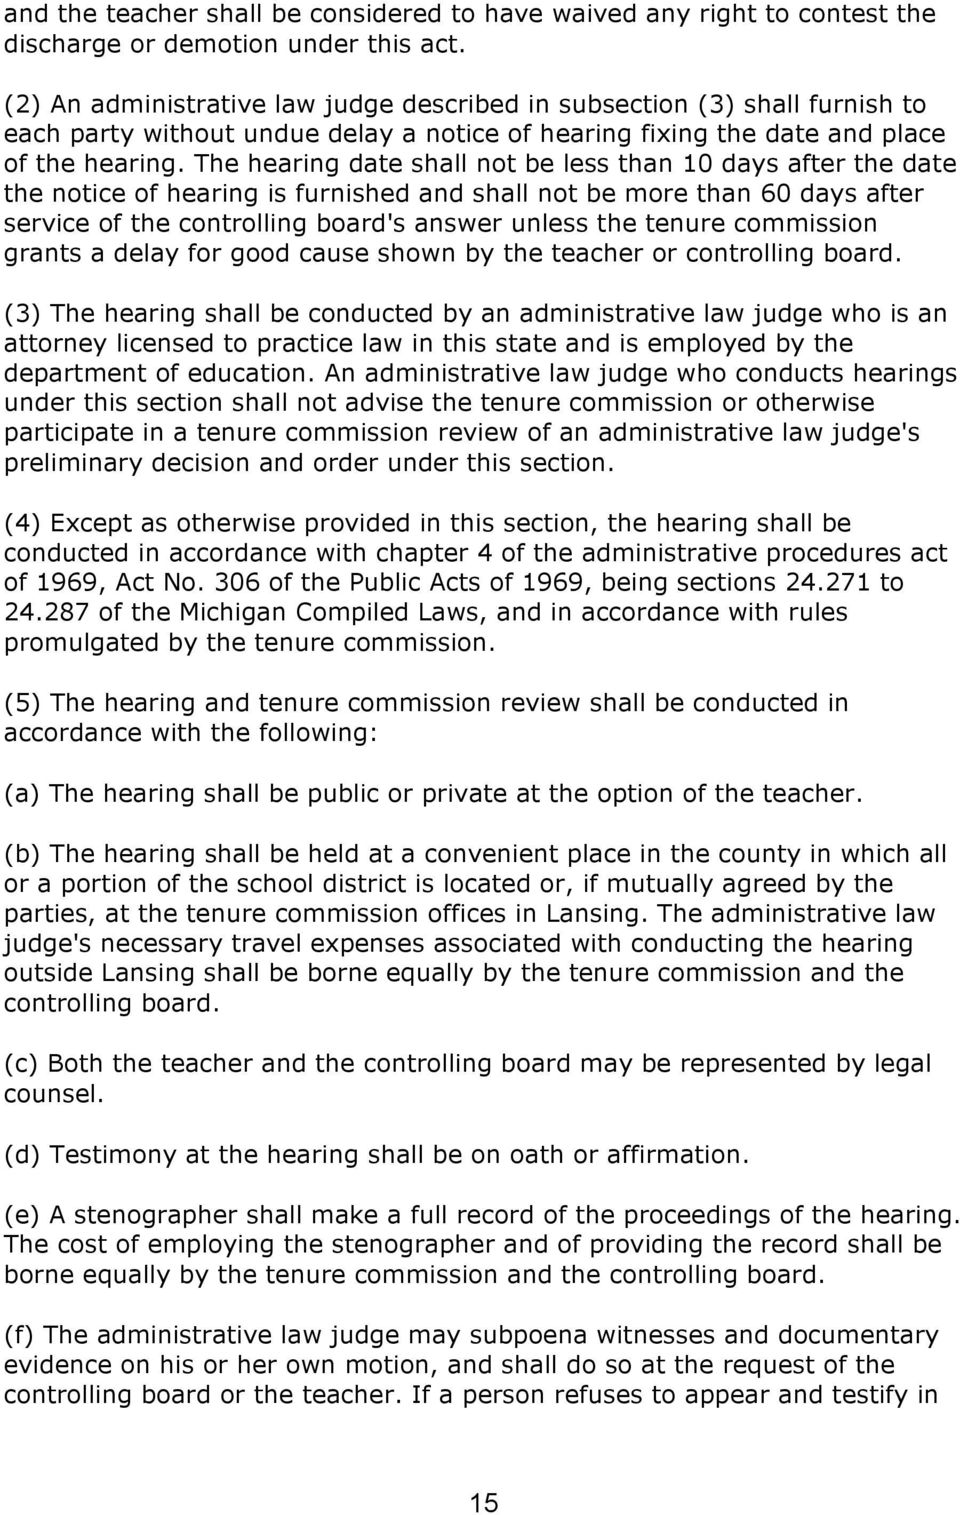 The hearing date shall not be less than 10 days after the date the notice of hearing is furnished and shall not be more than 60 days after service of the controlling board's answer unless the tenure